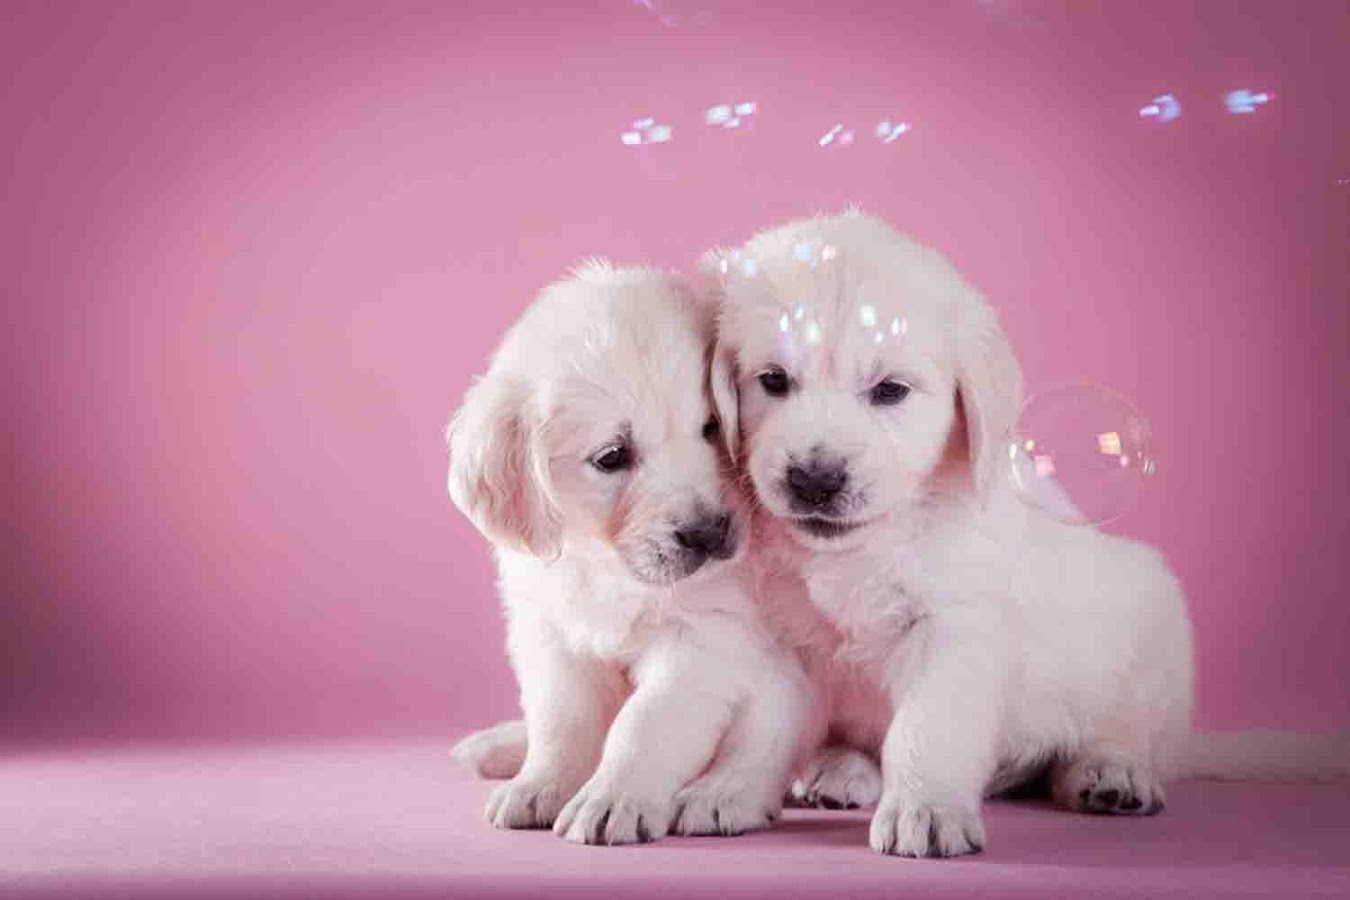 Cute Puppy Backgrounds – Android Apps on Google Play